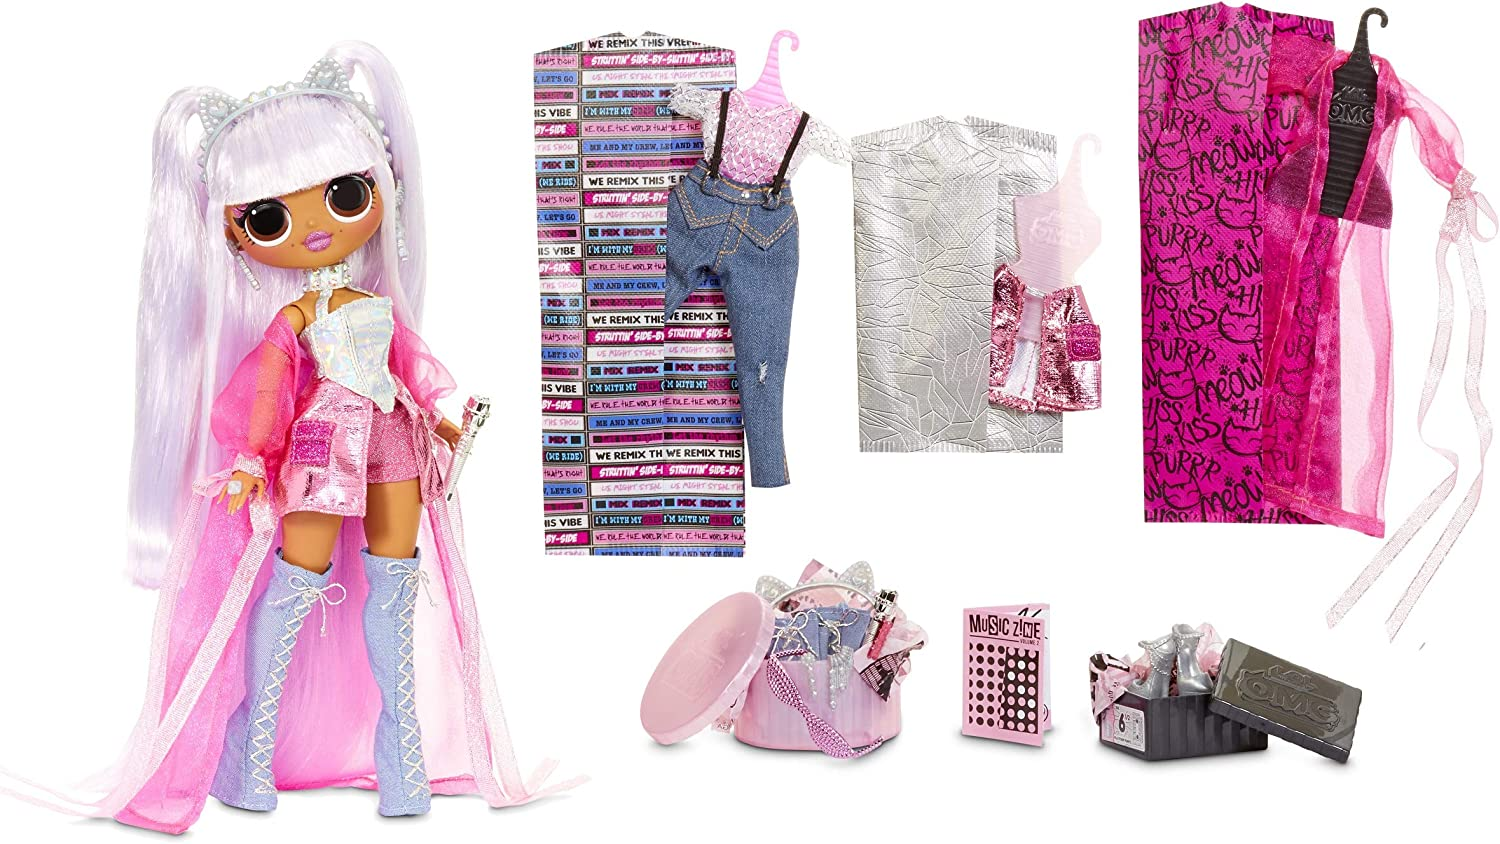 Lol Surprise Omg Remix Kitty K Fashion Doll With 25 Surprises Plays Music With Extra Outfit Shoes Hair Brush Doll Stand Lyric Magazine And Record Player Package For Girls Ages